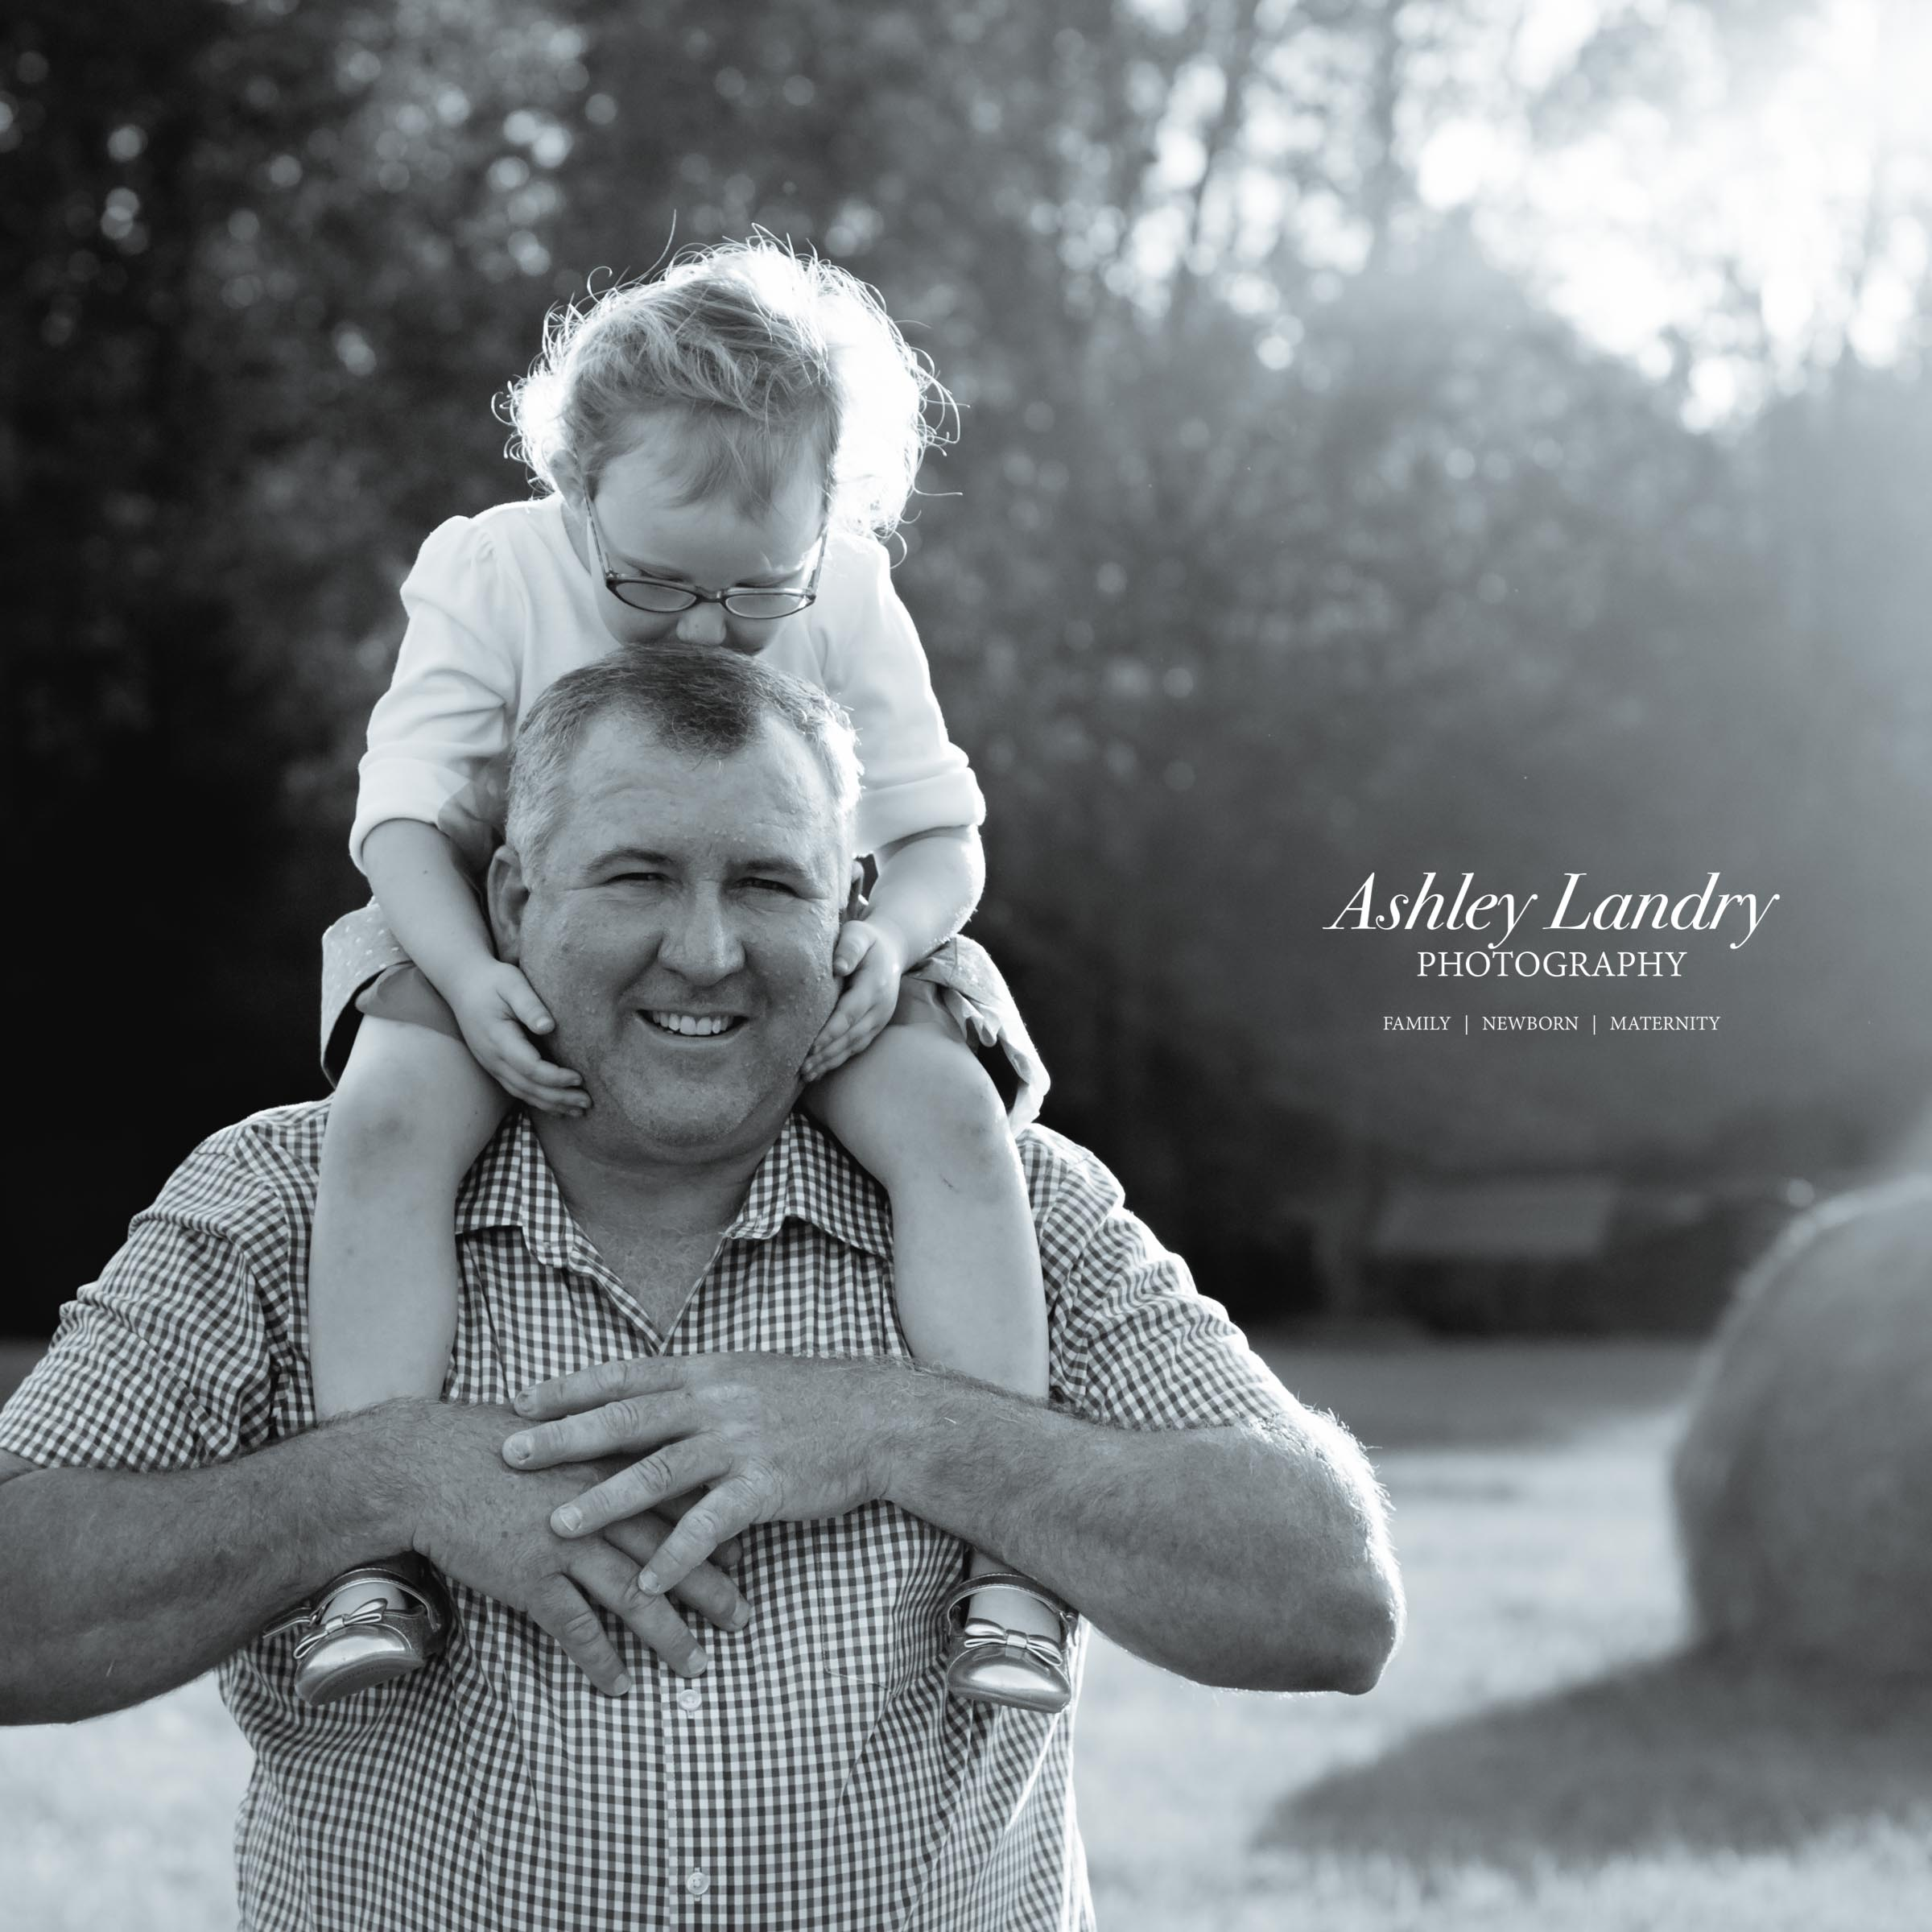 ashley-landry-photography-social-media-4